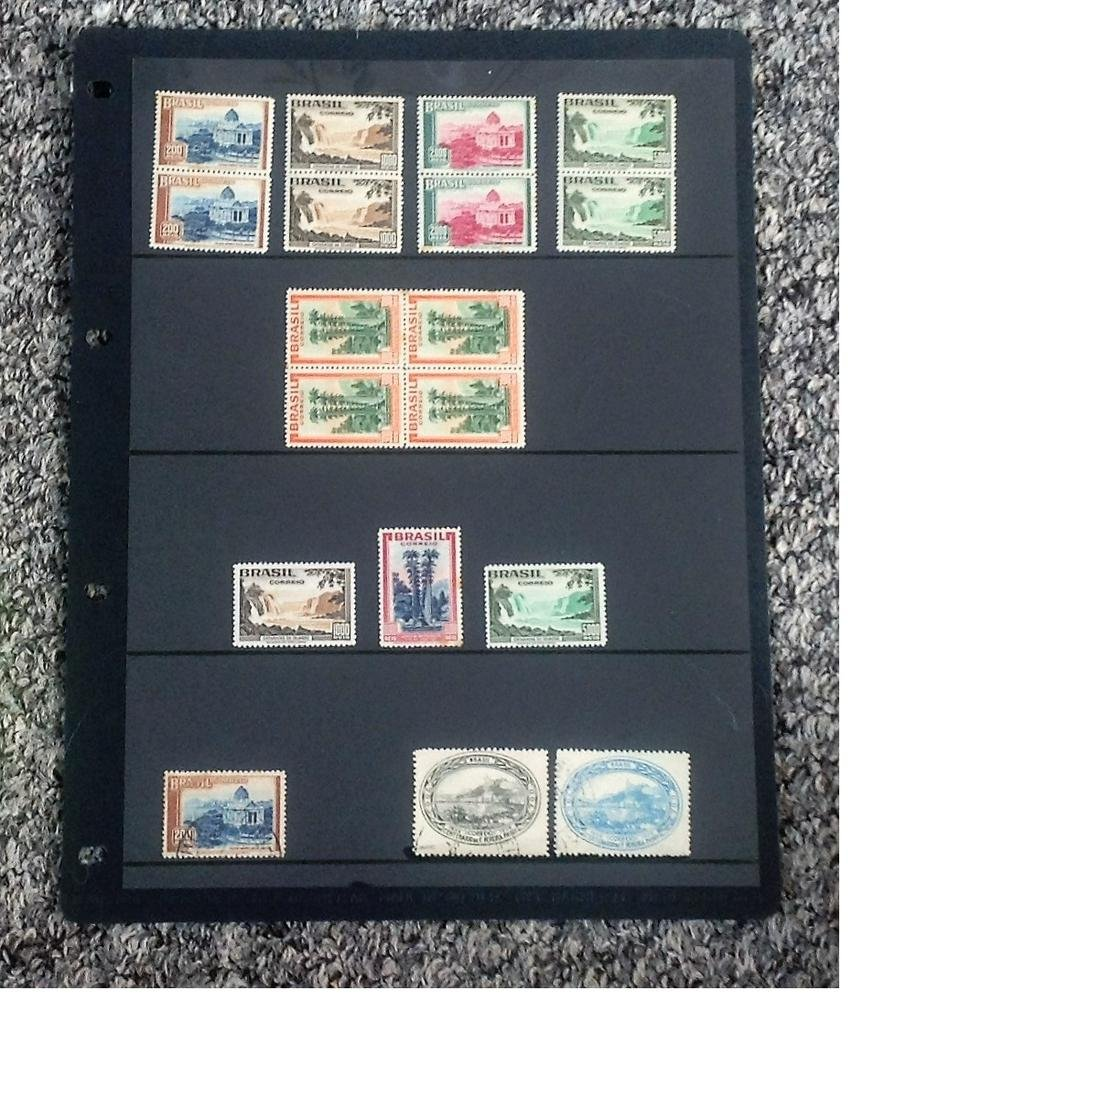 Brazil stamp collection on stock card. 18 stamps.